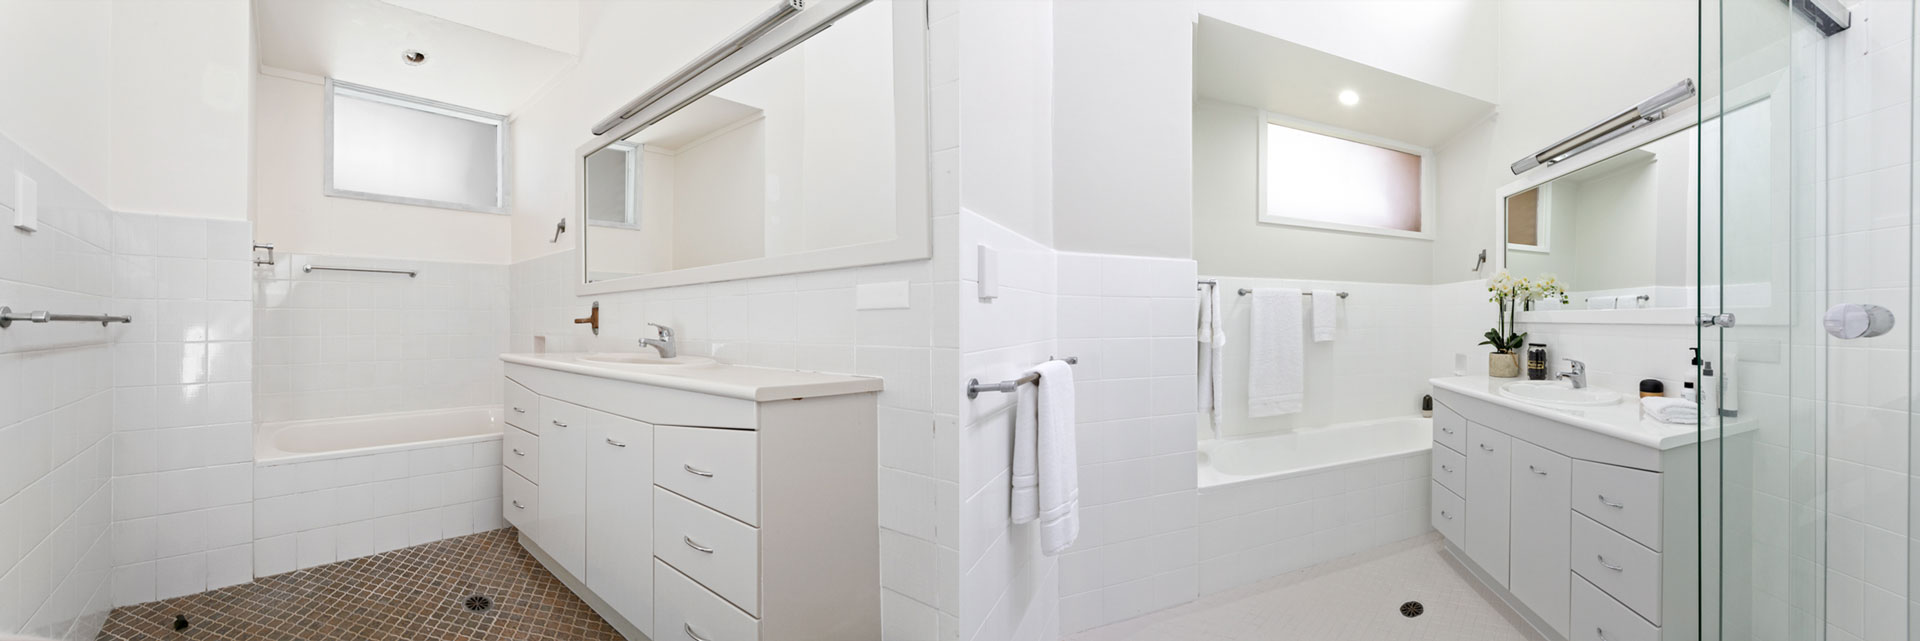 Professional spray painting kitchen cabinets sydney